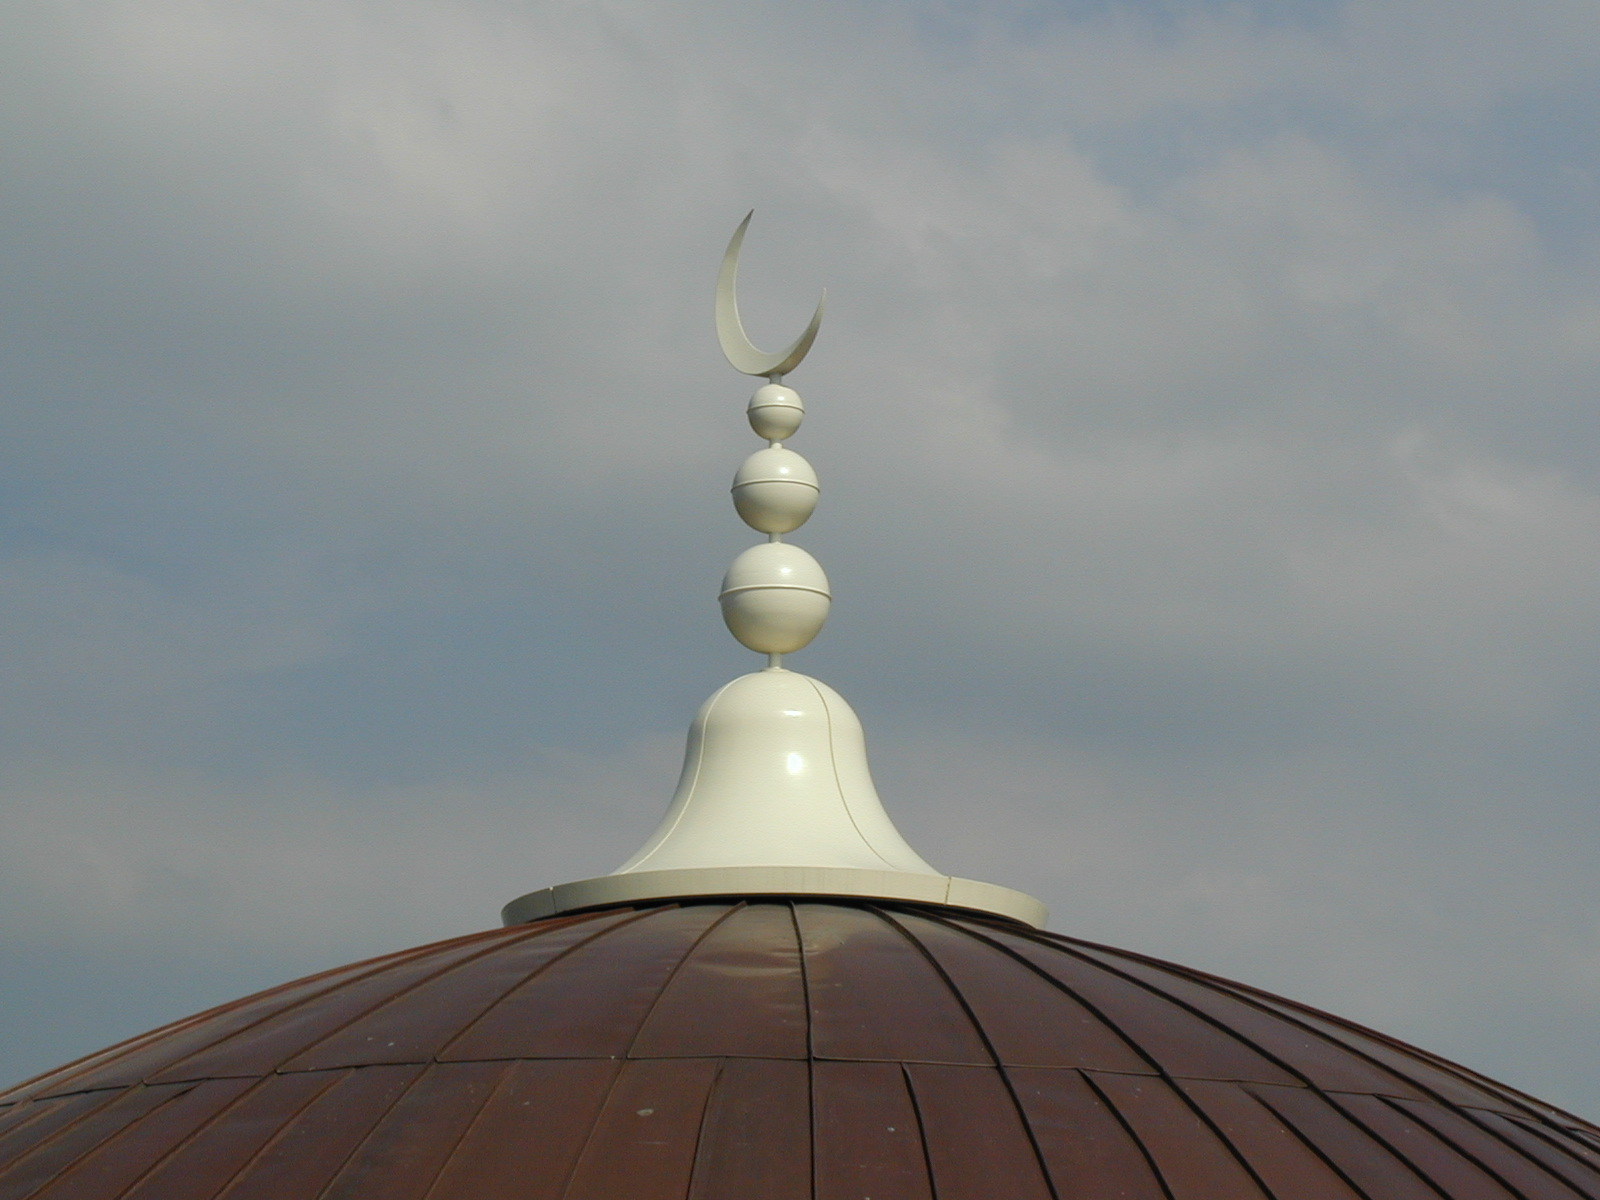 Bespoke finial for a Mosque